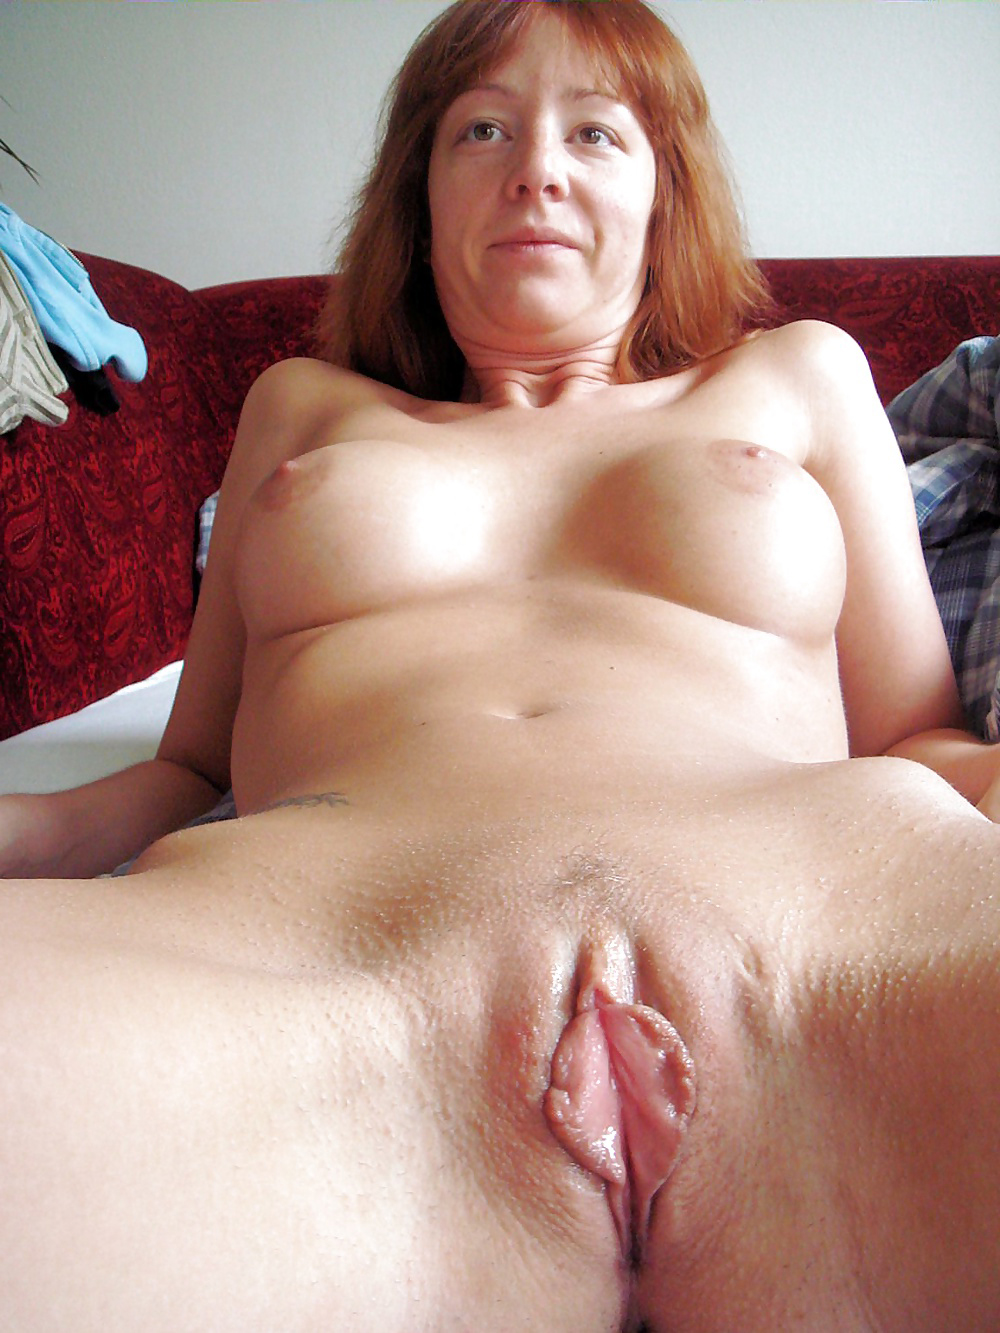 Adult Xxx Pussy - Xxx unpractised adult pussy porn pictures - MatureHomemadePorn.com